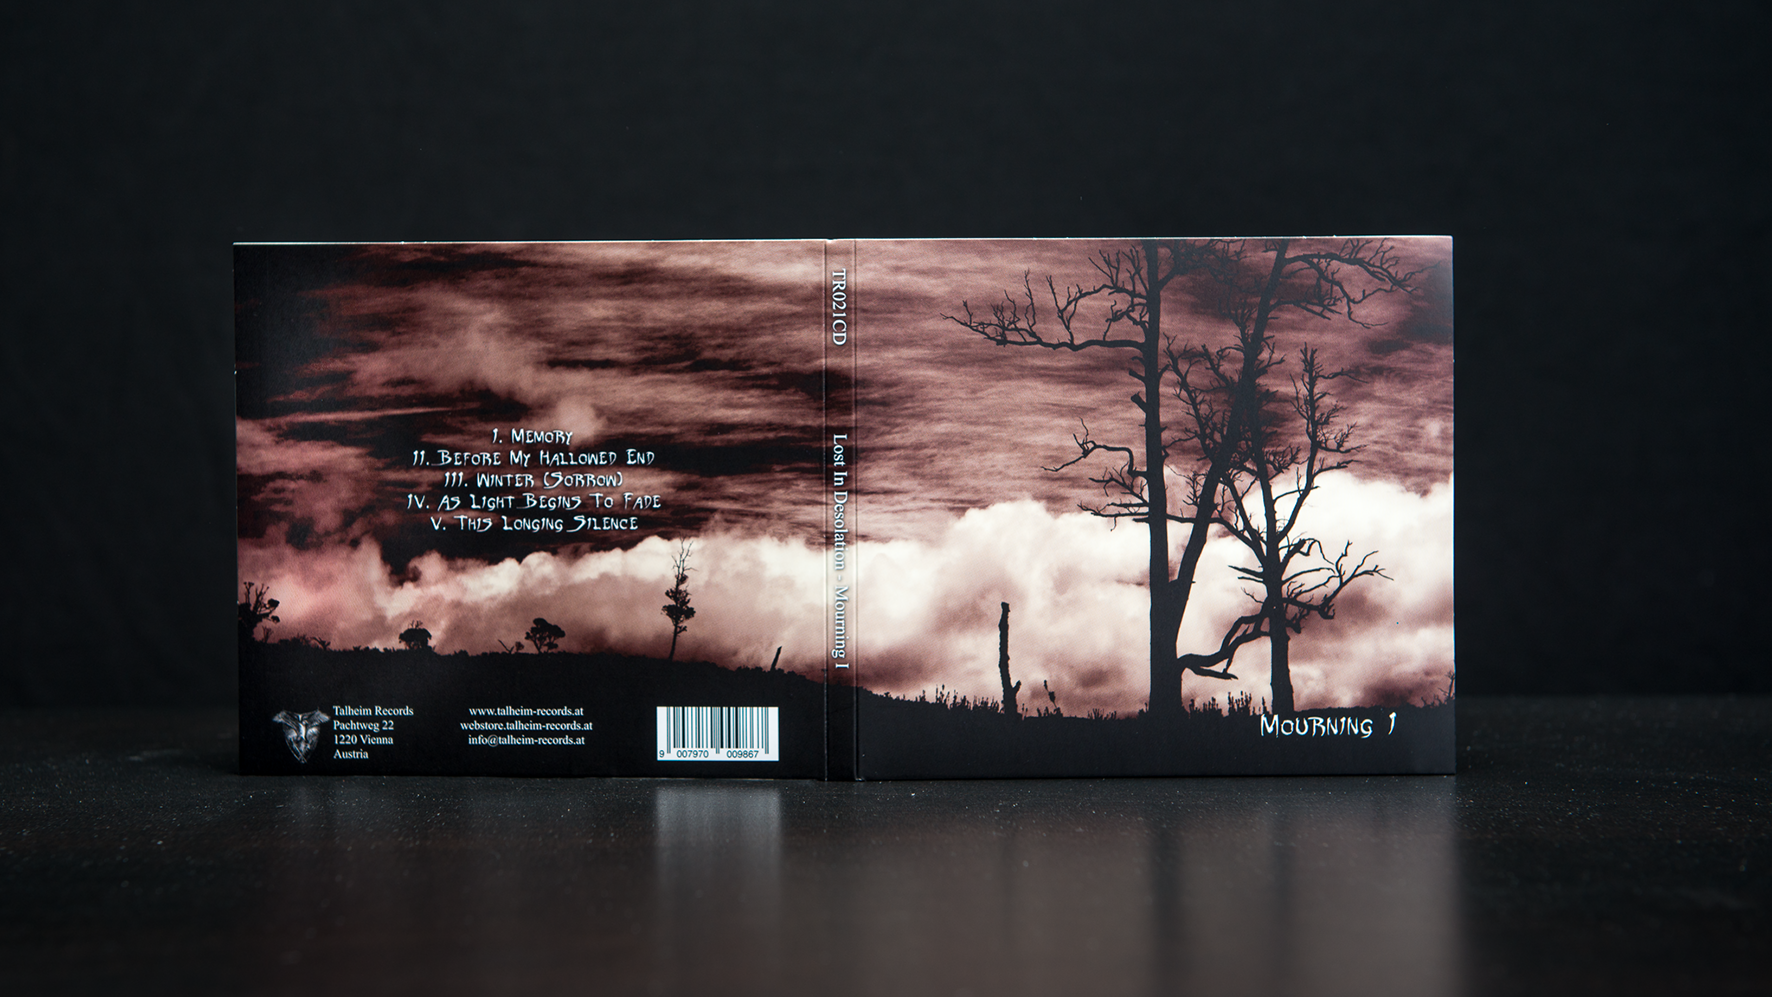 Lost In Desolation - Mourning I CD Digipack